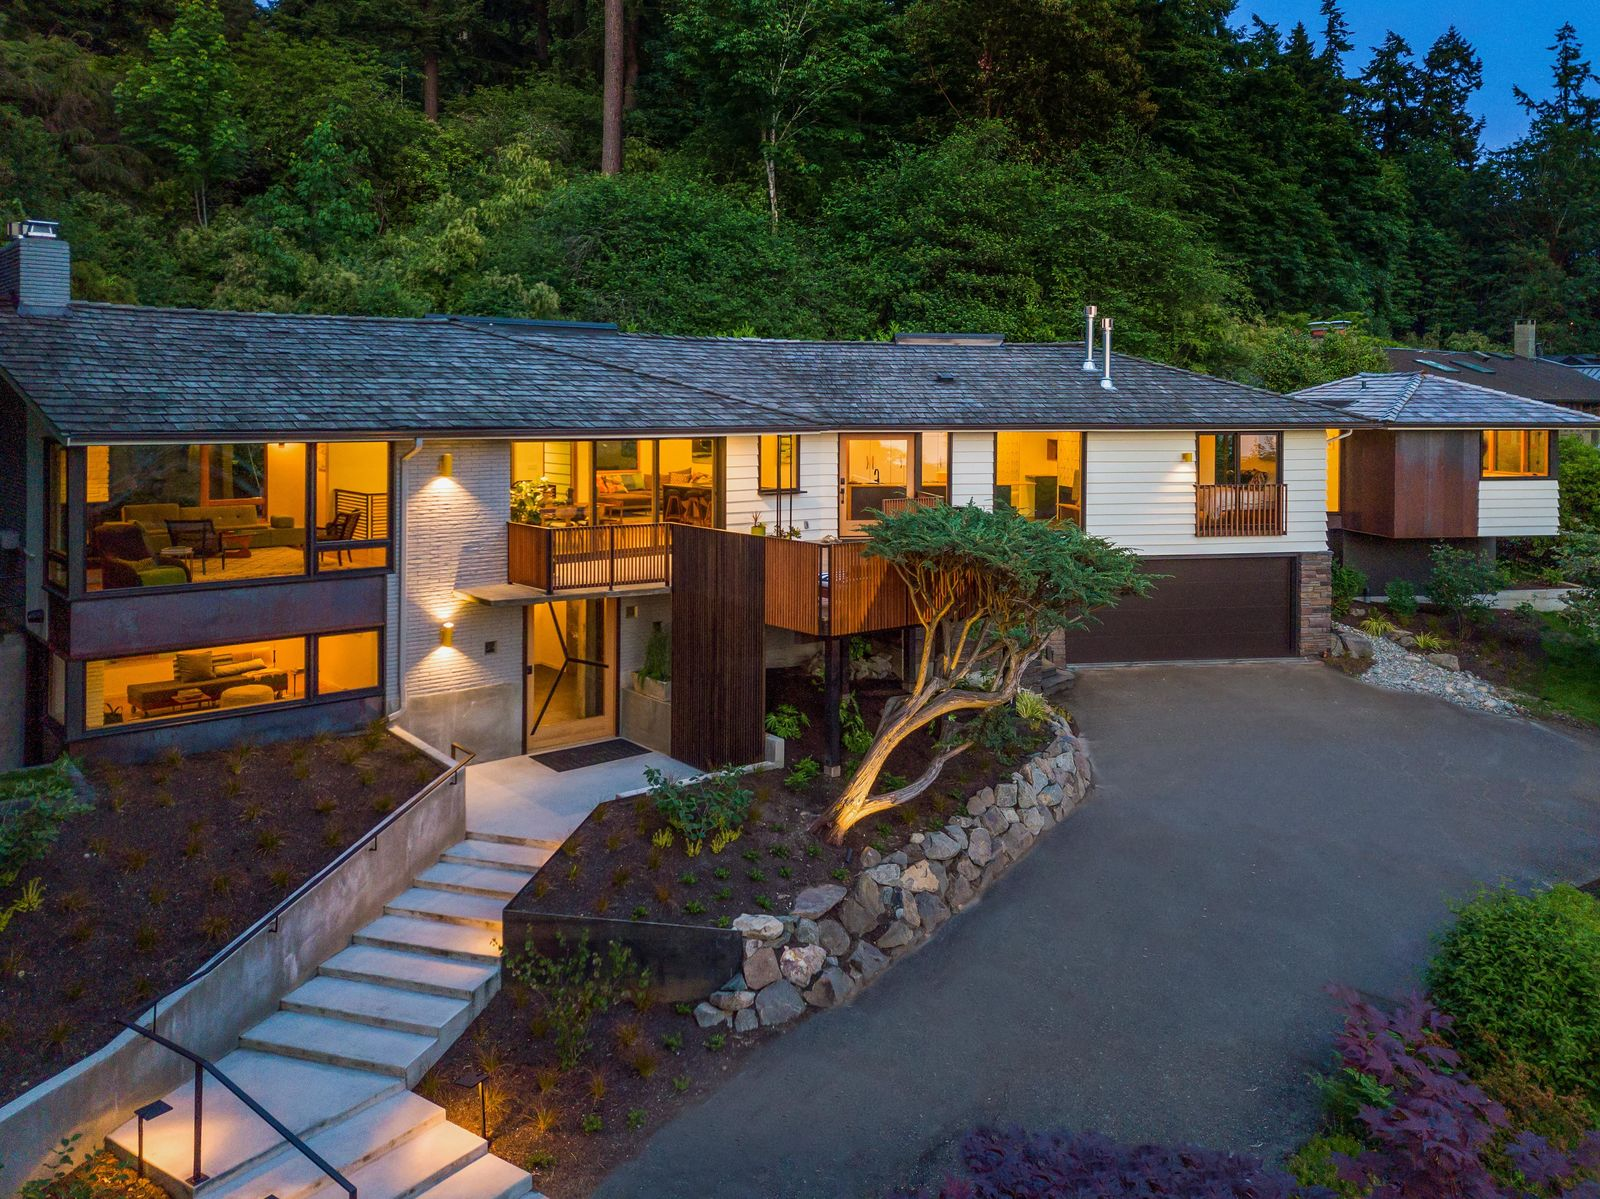 "The designer pulled out all of the stops in this ""complete reinvention of a classic mid-century home.""<a  href=""https://www.windermere.com/listing/WA/Seattle/1031-NW-Elford-Dr-98177/96196208"" target=""_blank"" title=""https://www.windermere.com/listing/WA/Seattle/1031-NW-Elford-Dr-98177/96196208"">{&nbsp;}Listed by Windermere,{&nbsp;}</a>this home is described as nuanced, custom, elegant and luxe with playful details. Sitting on nearly 2/3 acre, the home boasts western views of the water and mountains and ""feels as if you've escaped to the islands"" yet is still only 10 miles to downtown or South Lake Union! With 4 beds, 5 baths and 3,893 square feet, the home is listed at $2,798,000. (Image courtesy of Windermere)."